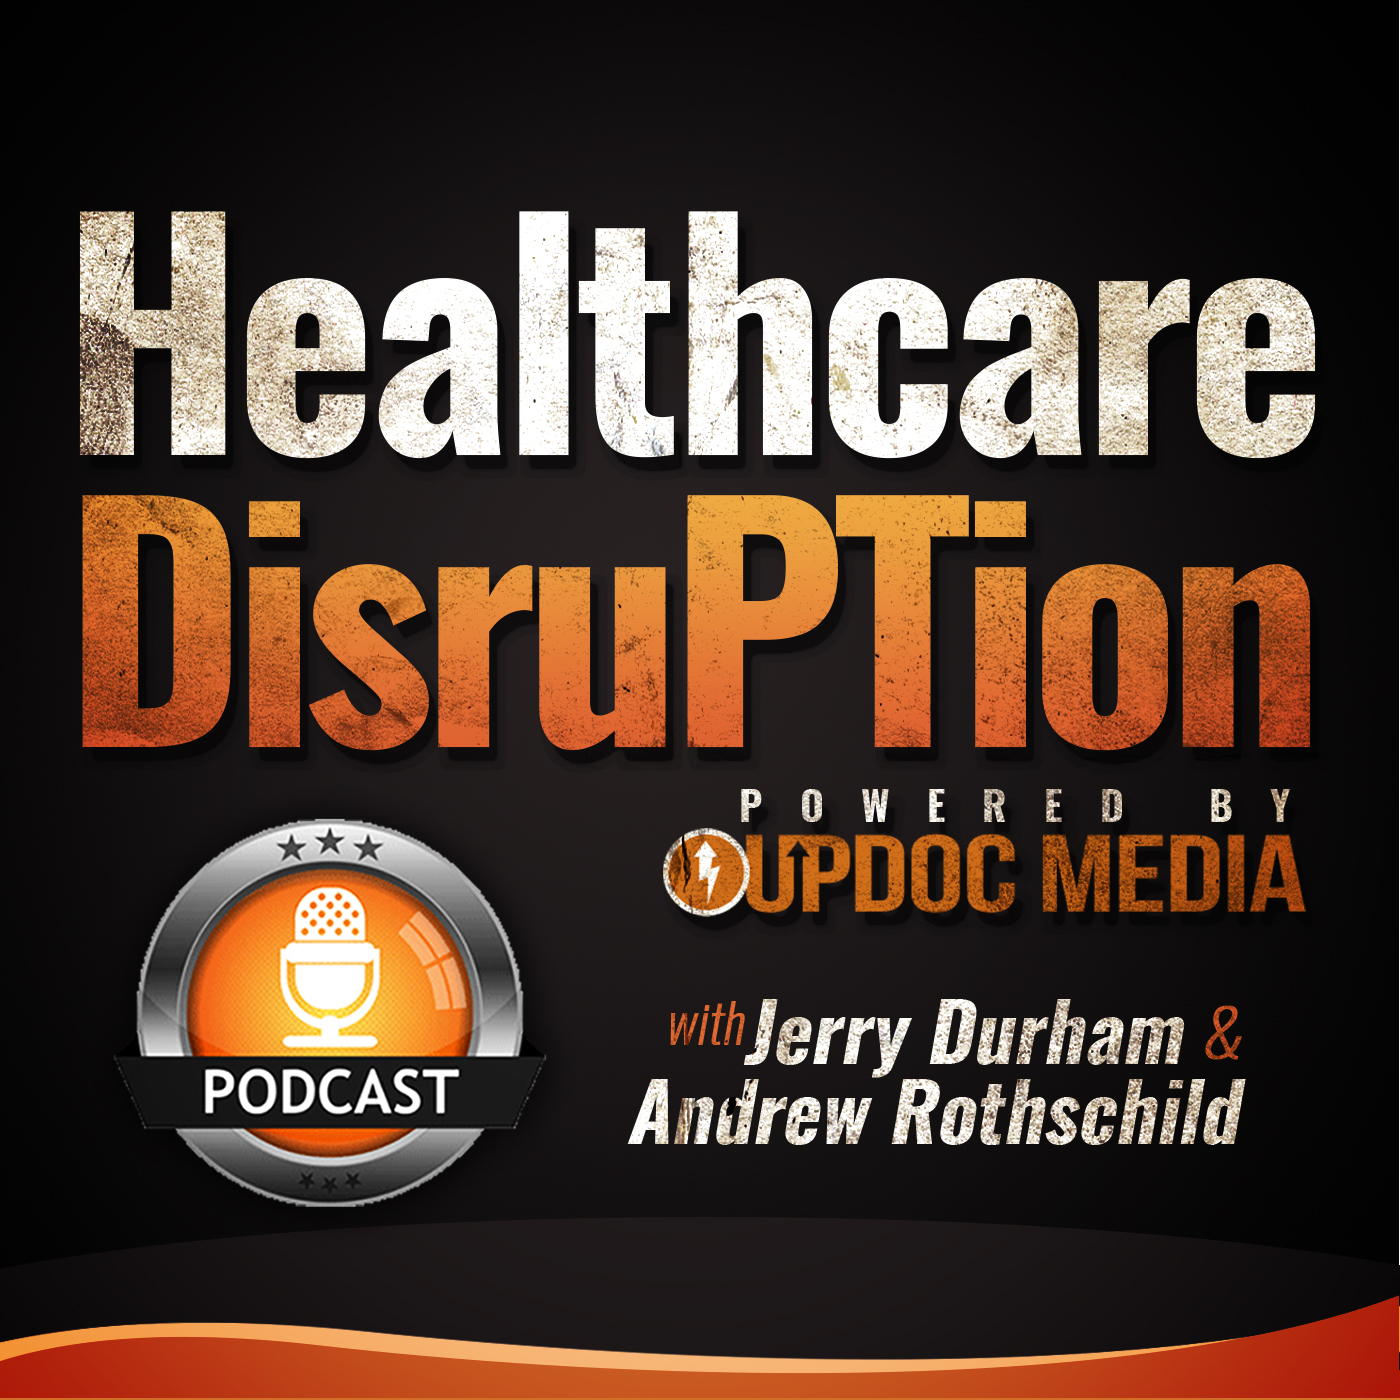 Healthcare DisruPTion interview Matt Watkinson